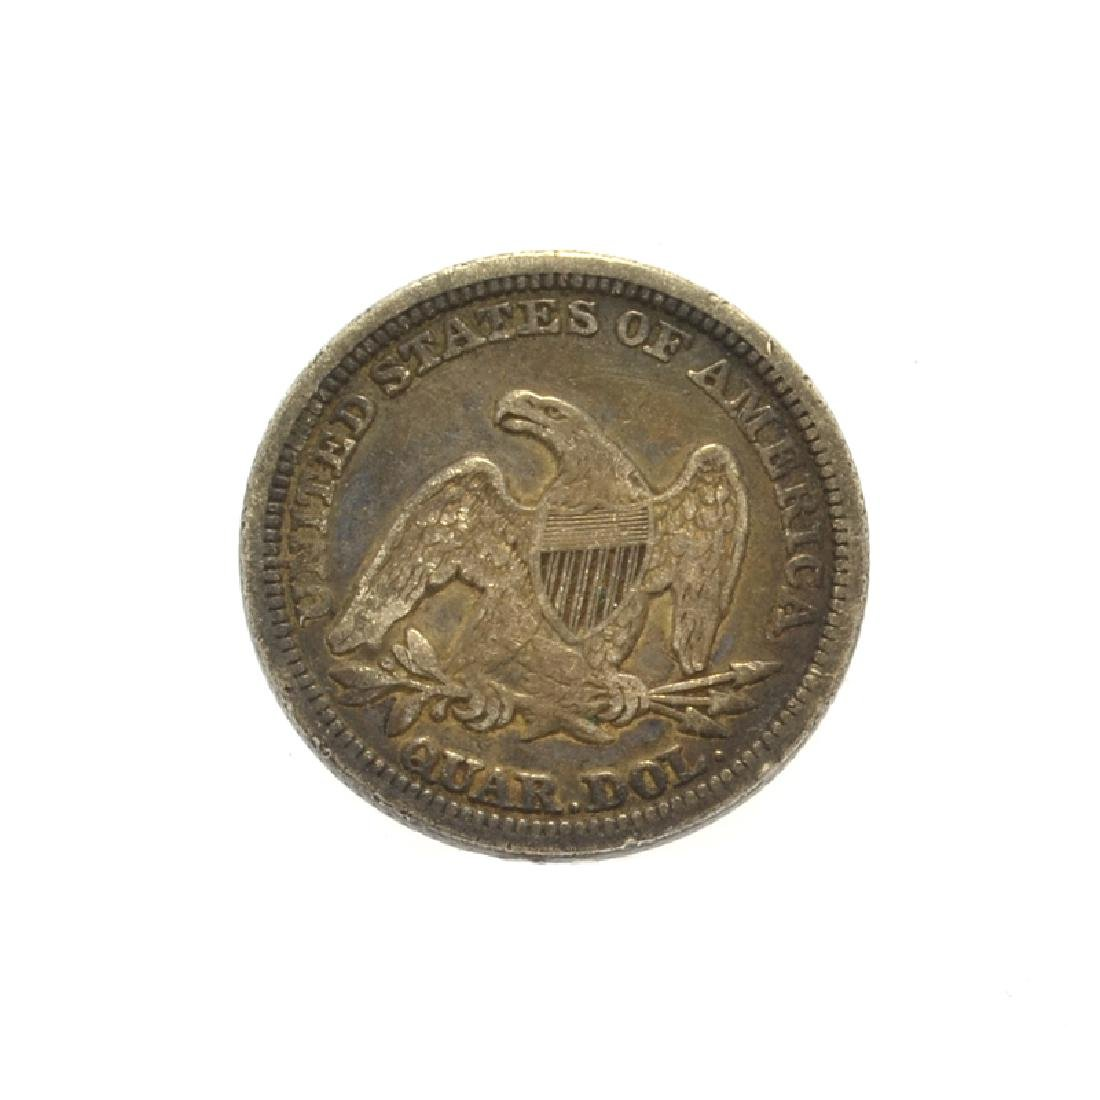 1857 Liberty Seated Quarter Dollar Coin - 2